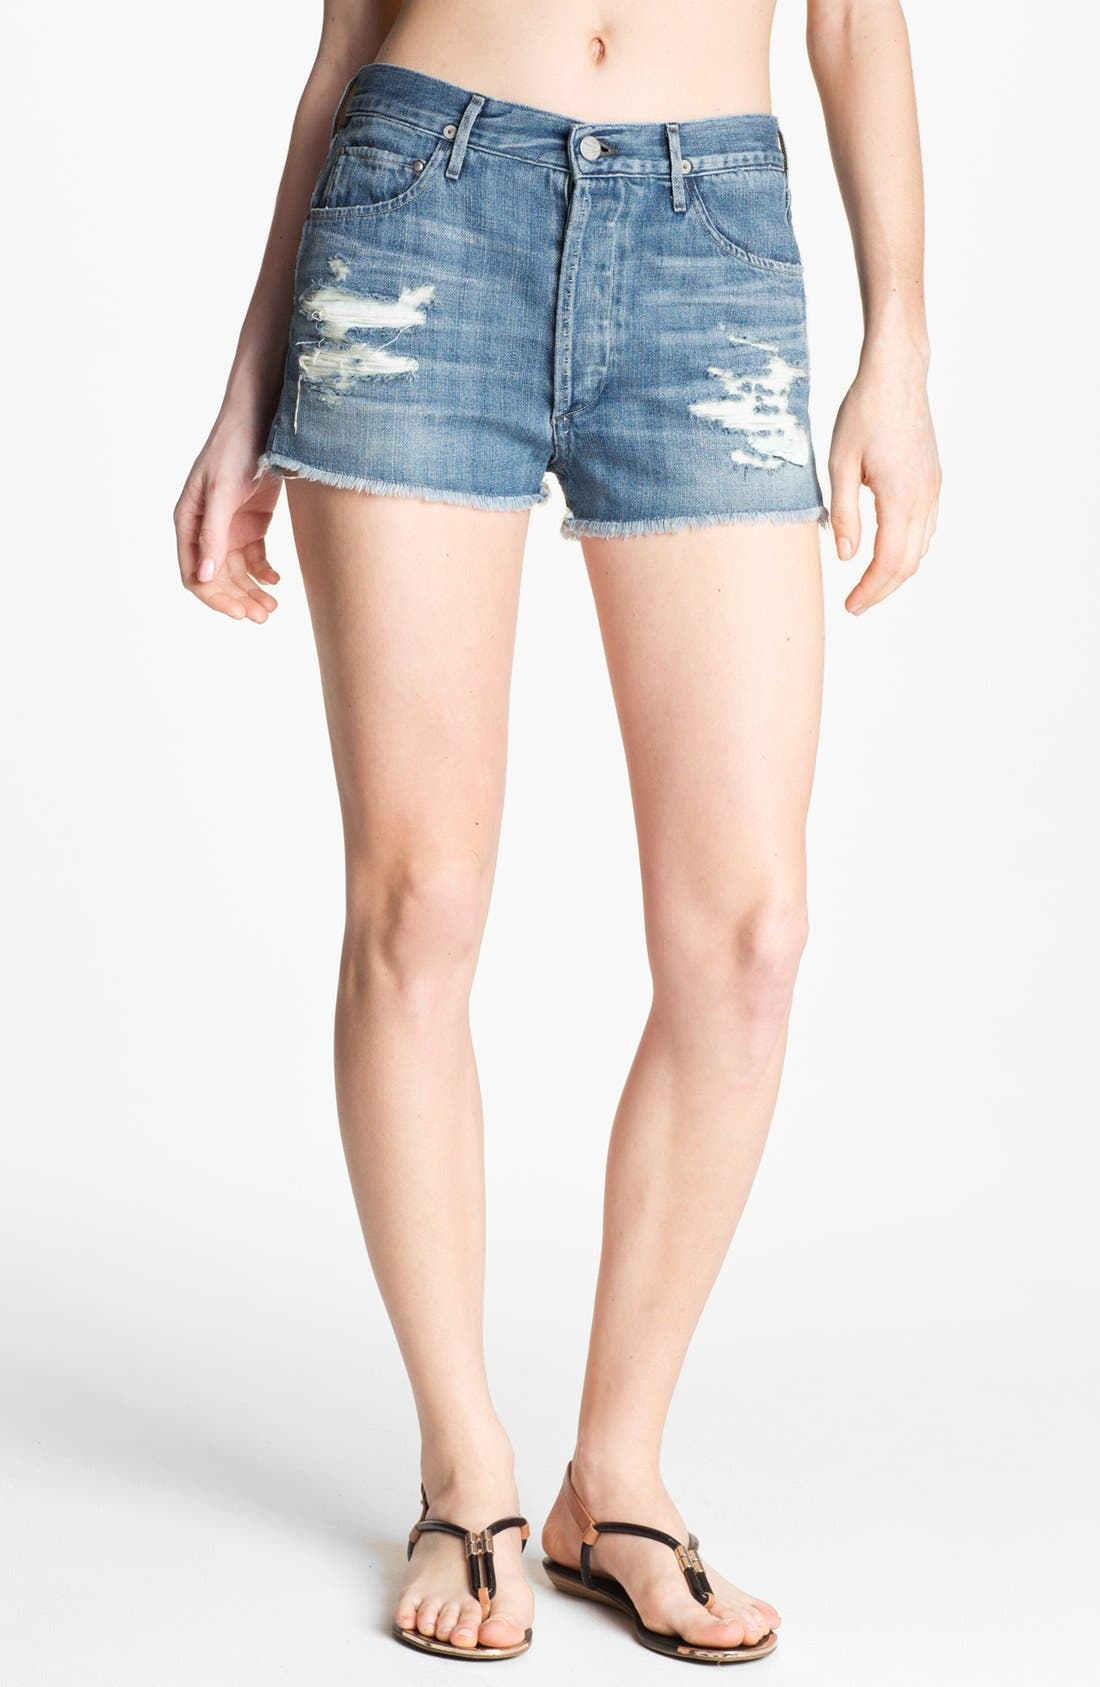 Alternate Image 1 Selected - Citizens of Humanity 'Chloe' High Waist Cutoff Shorts (Love Worn)